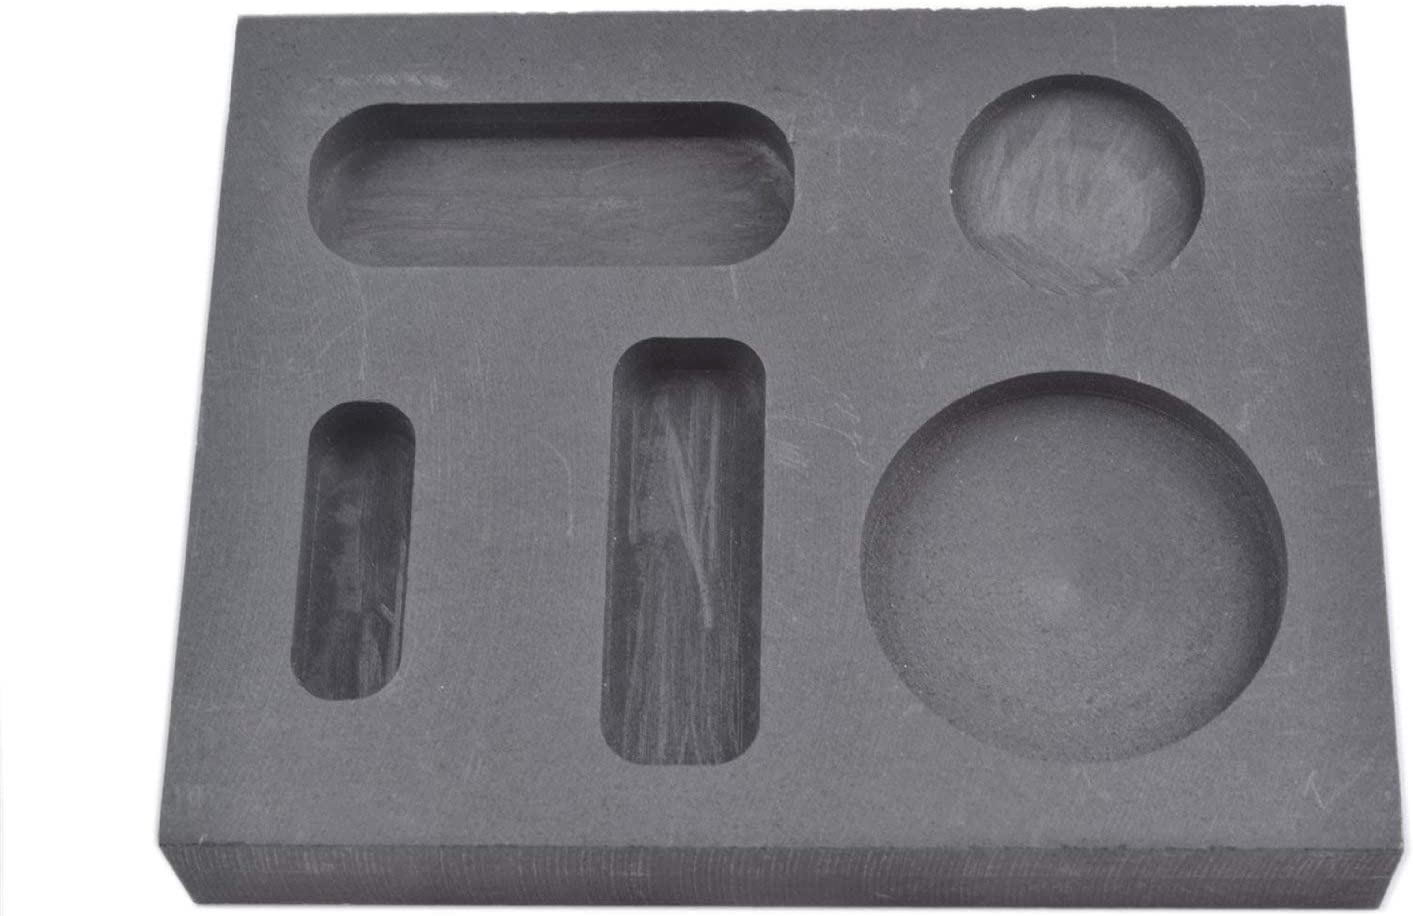 Graphite ingot to cast various weight of gold coins